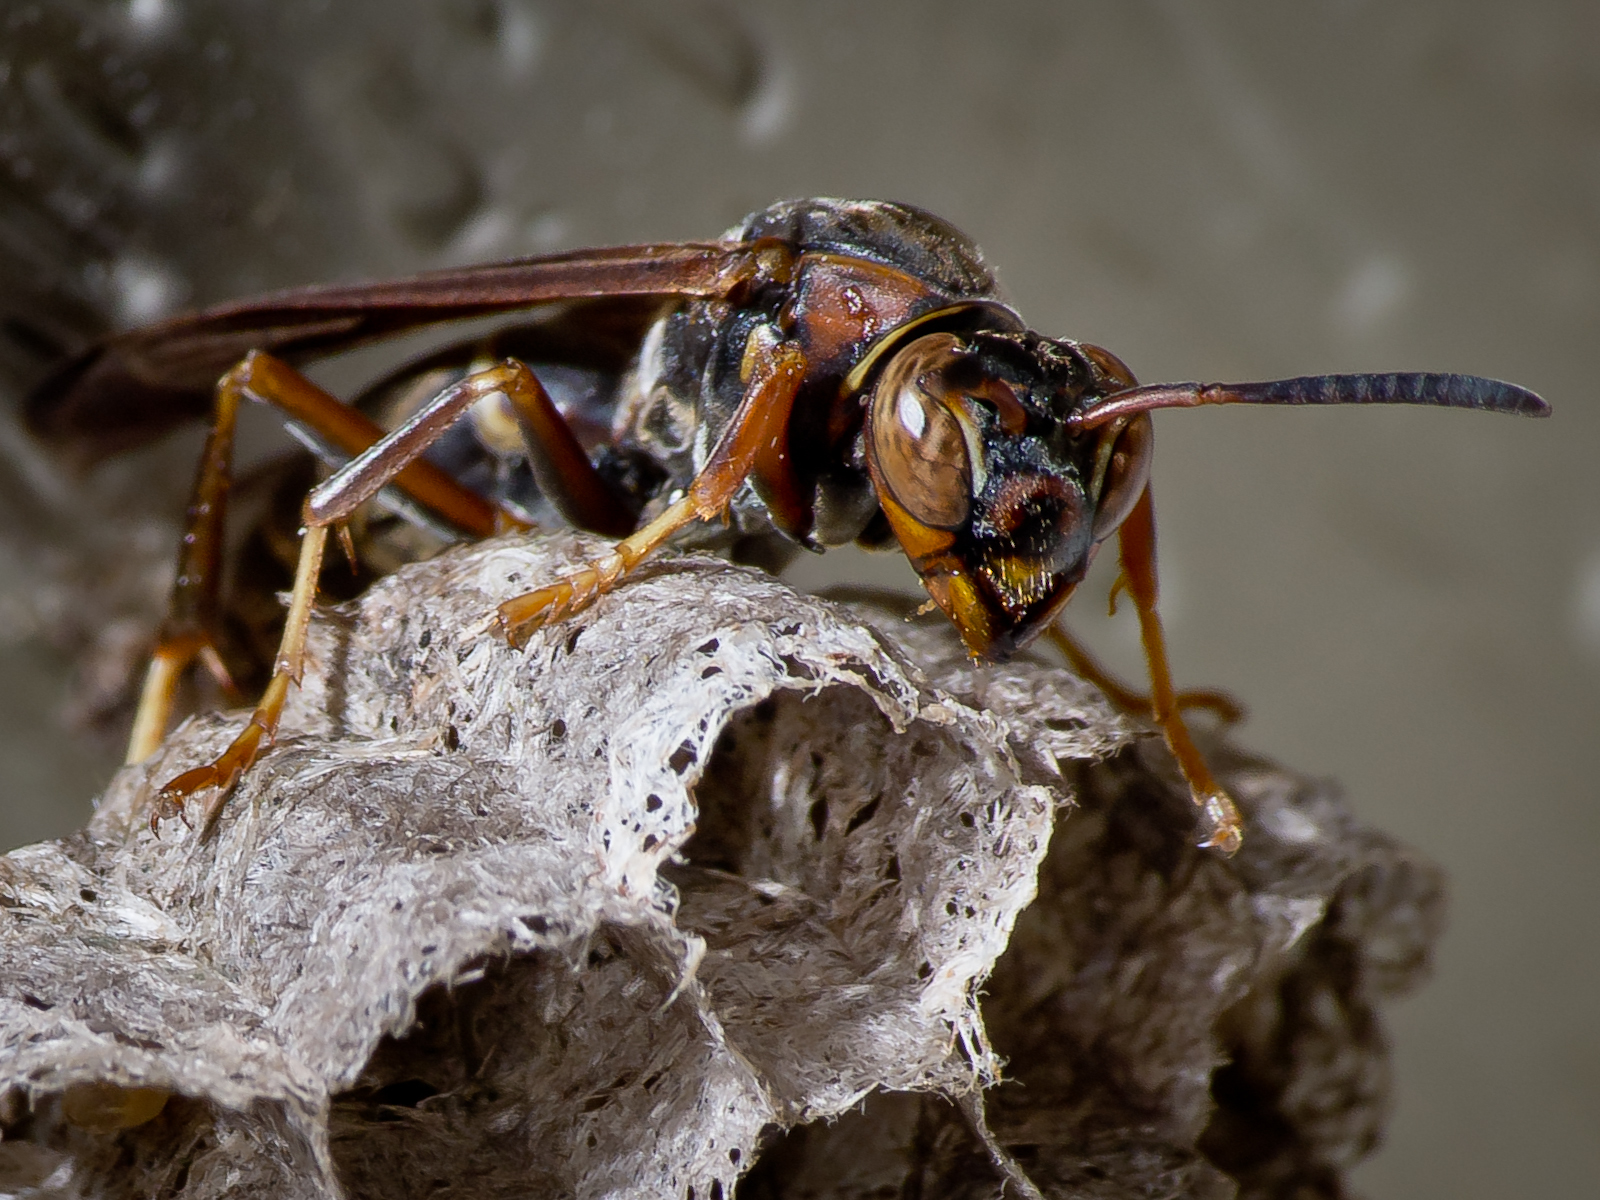 The brown wasps